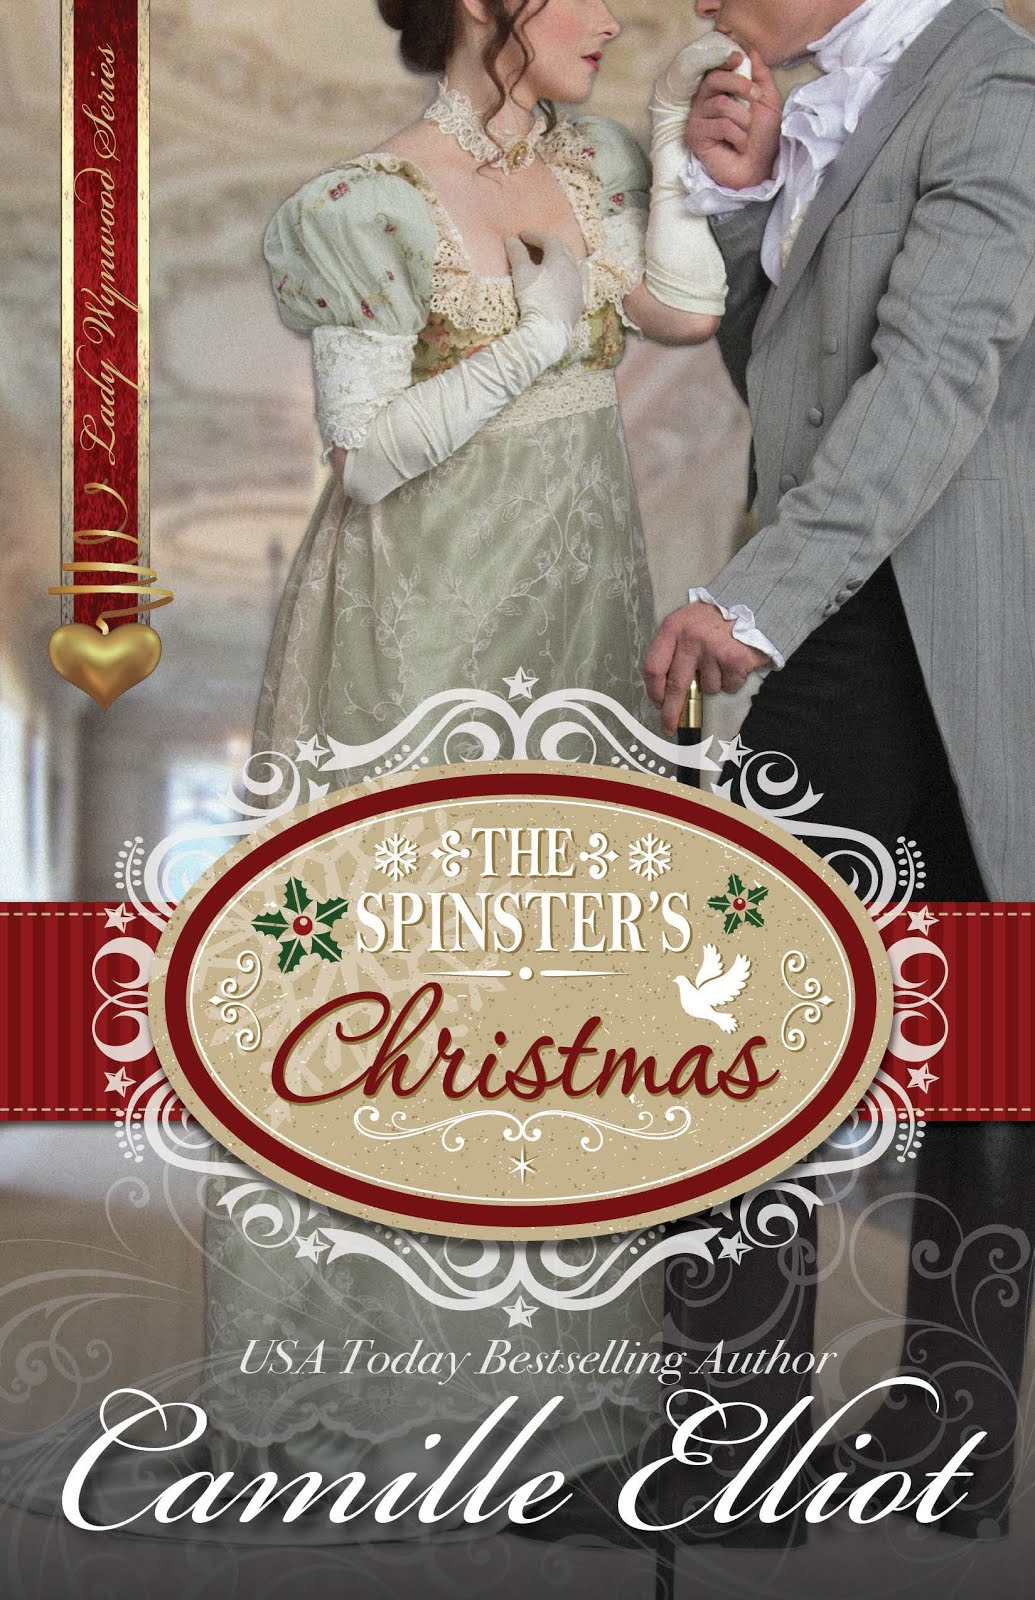 THE SPINSTER'S CHRISTMAS by Camille Elliot